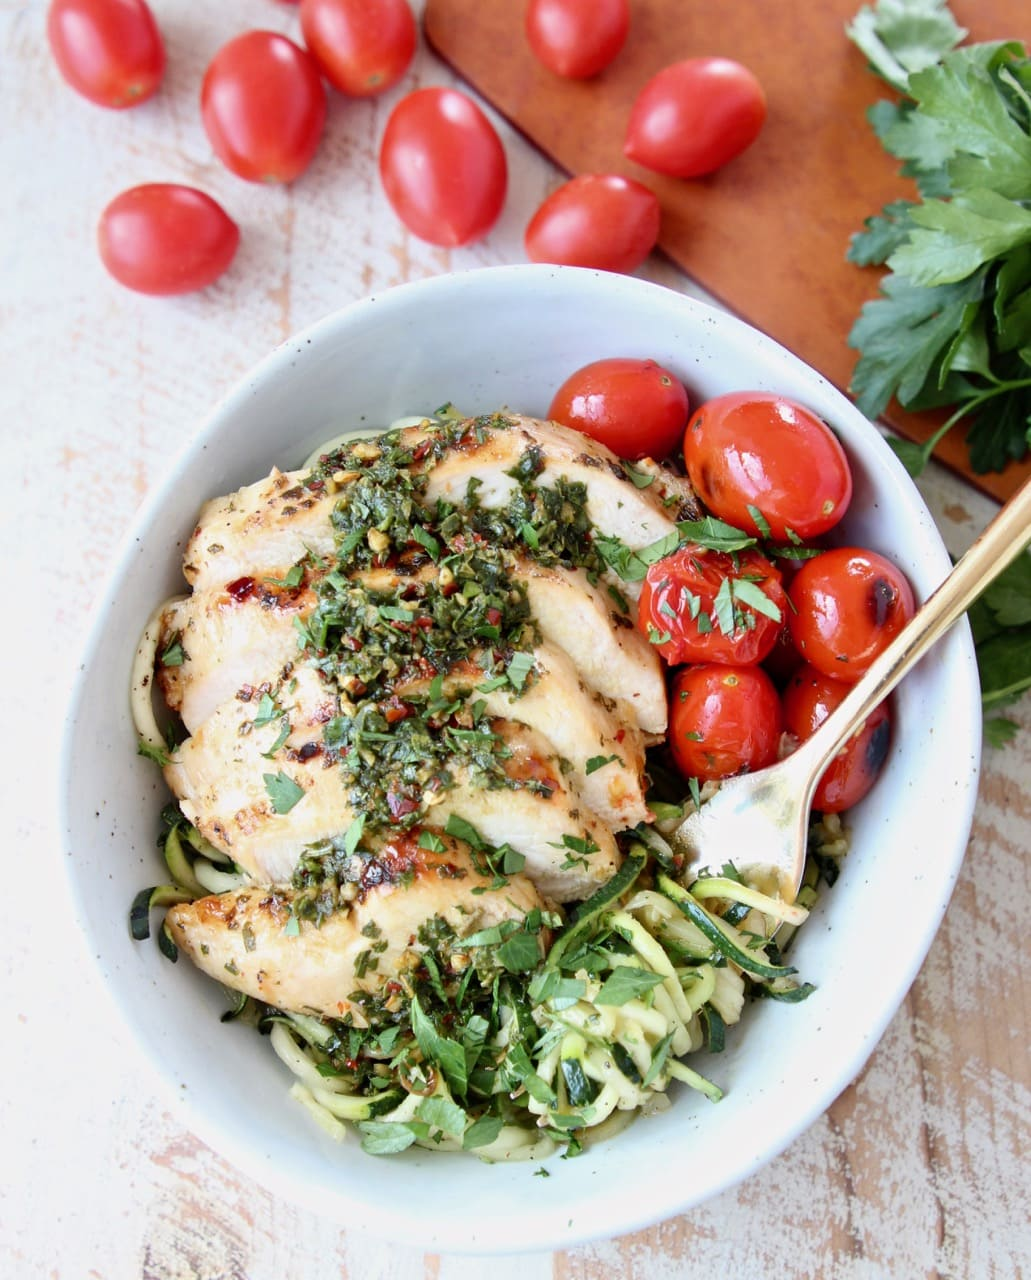 Zucchini Noodles with Grilled Chimichurri Chicken and Cherry Tomatoes